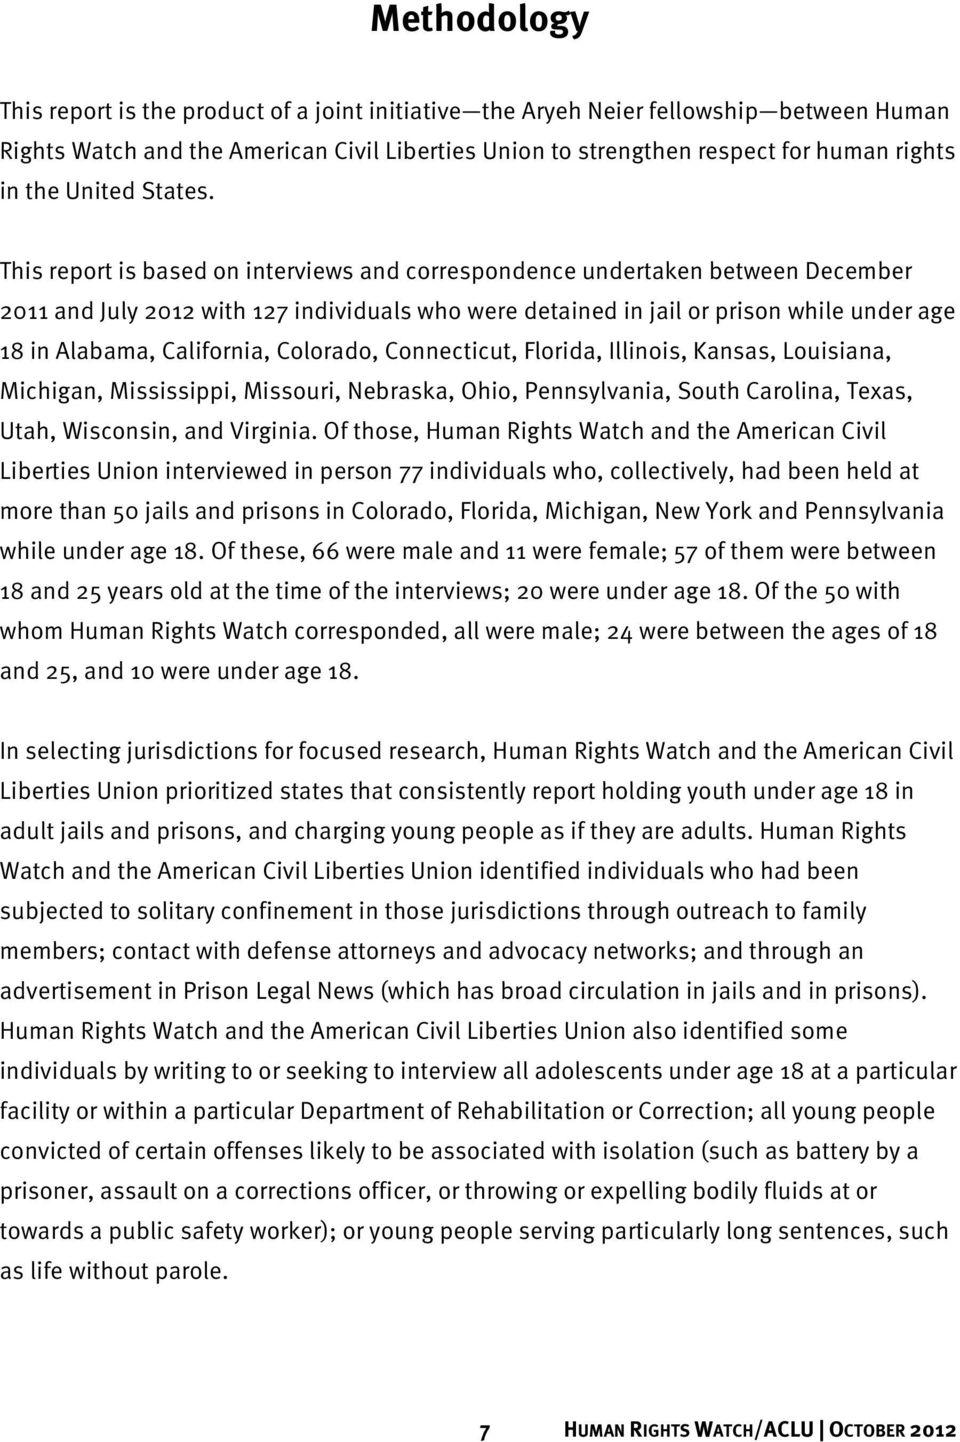 This report is based on interviews and correspondence undertaken between December 2011 and July 2012 with 127 individuals who were detained in jail or prison while under age 18 in Alabama,